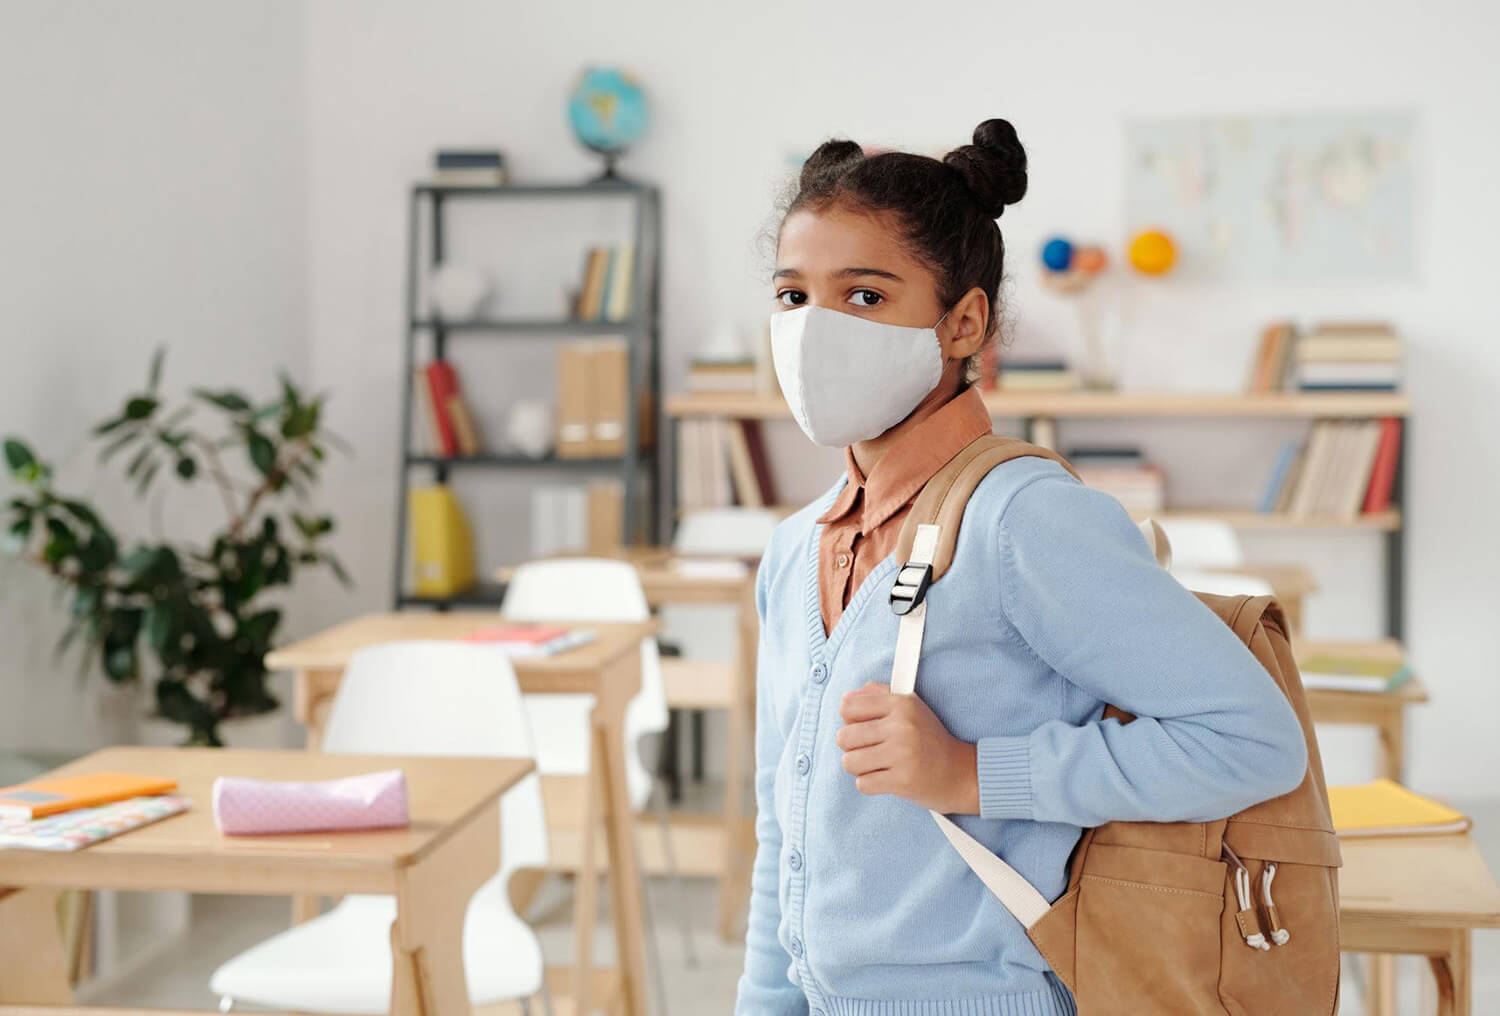 Student in a classroom wearing a face mask